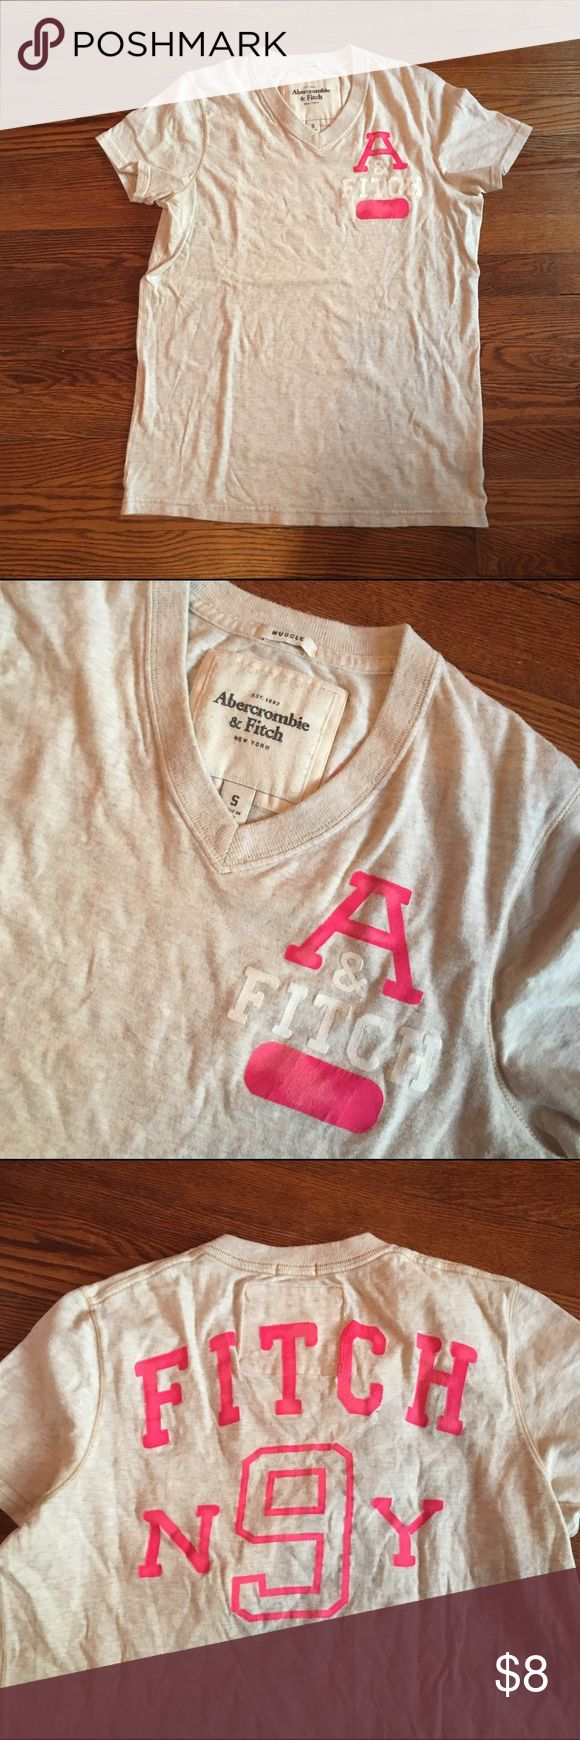 A & F tshirt Old style Abercrombie and Fitch tshirt. Abercrombie & Fitch Tops Tees - Short Sleeve